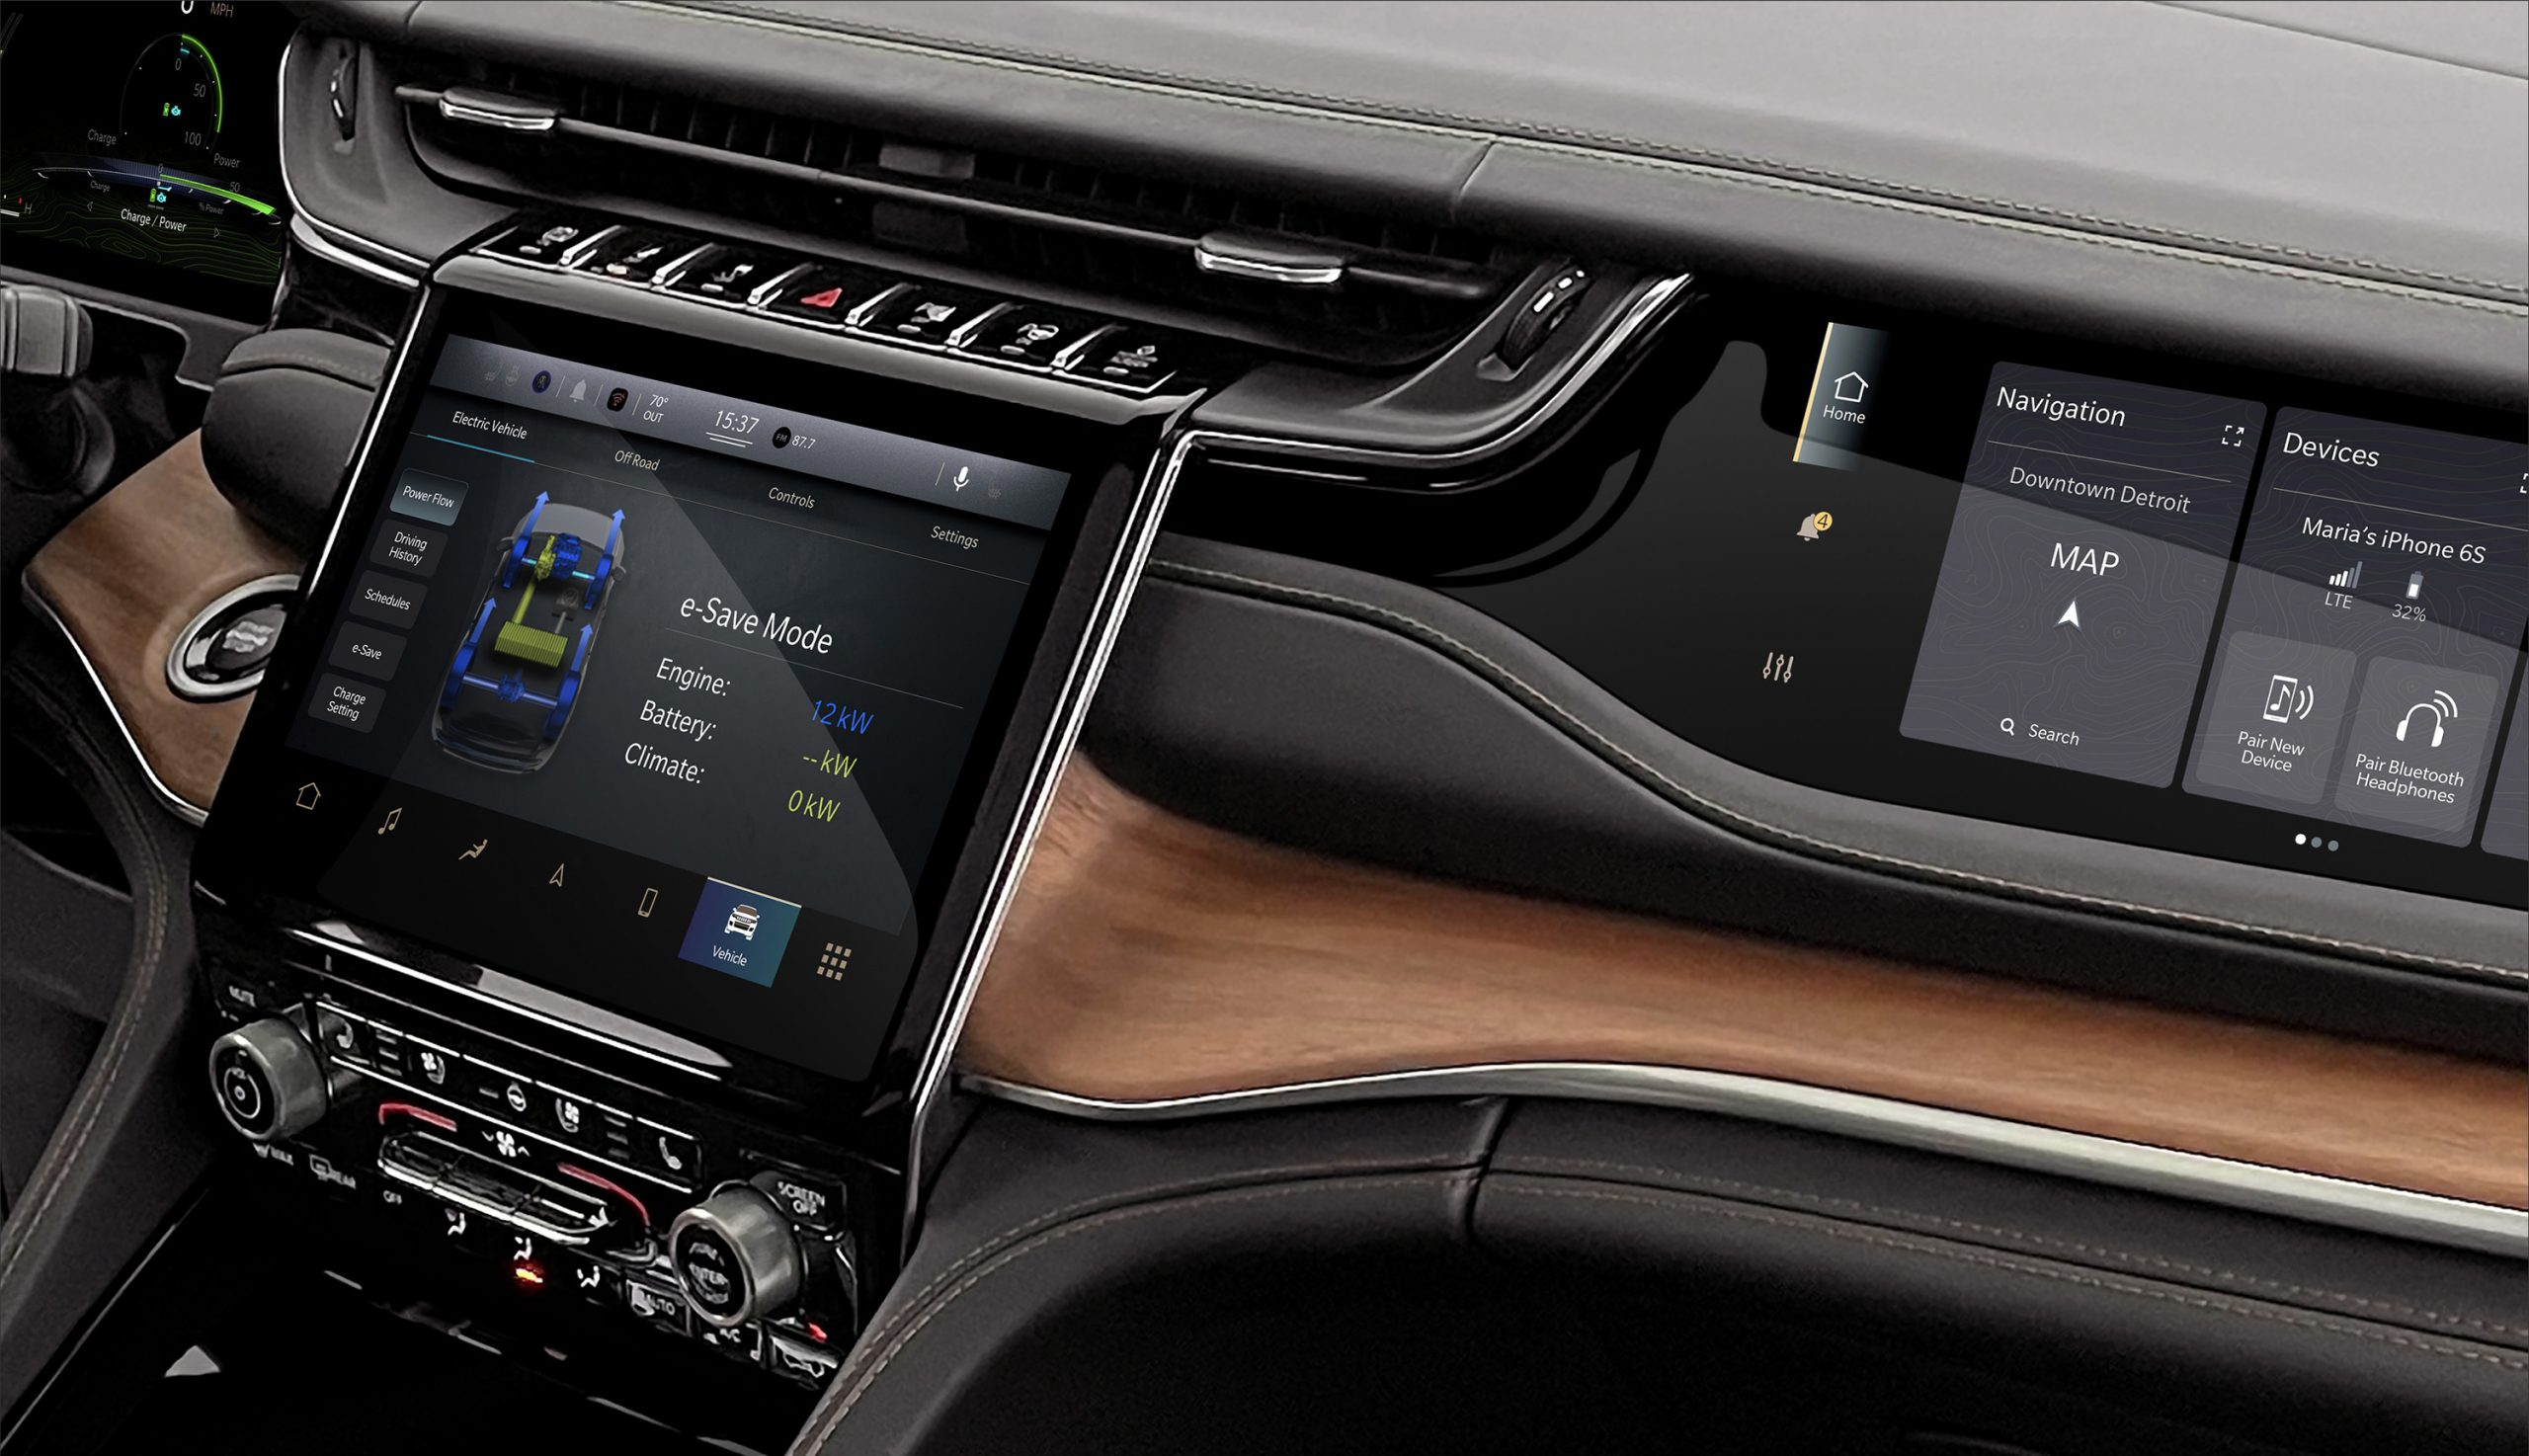 2022 Jeep Grand Cherokee interior UConnect screens